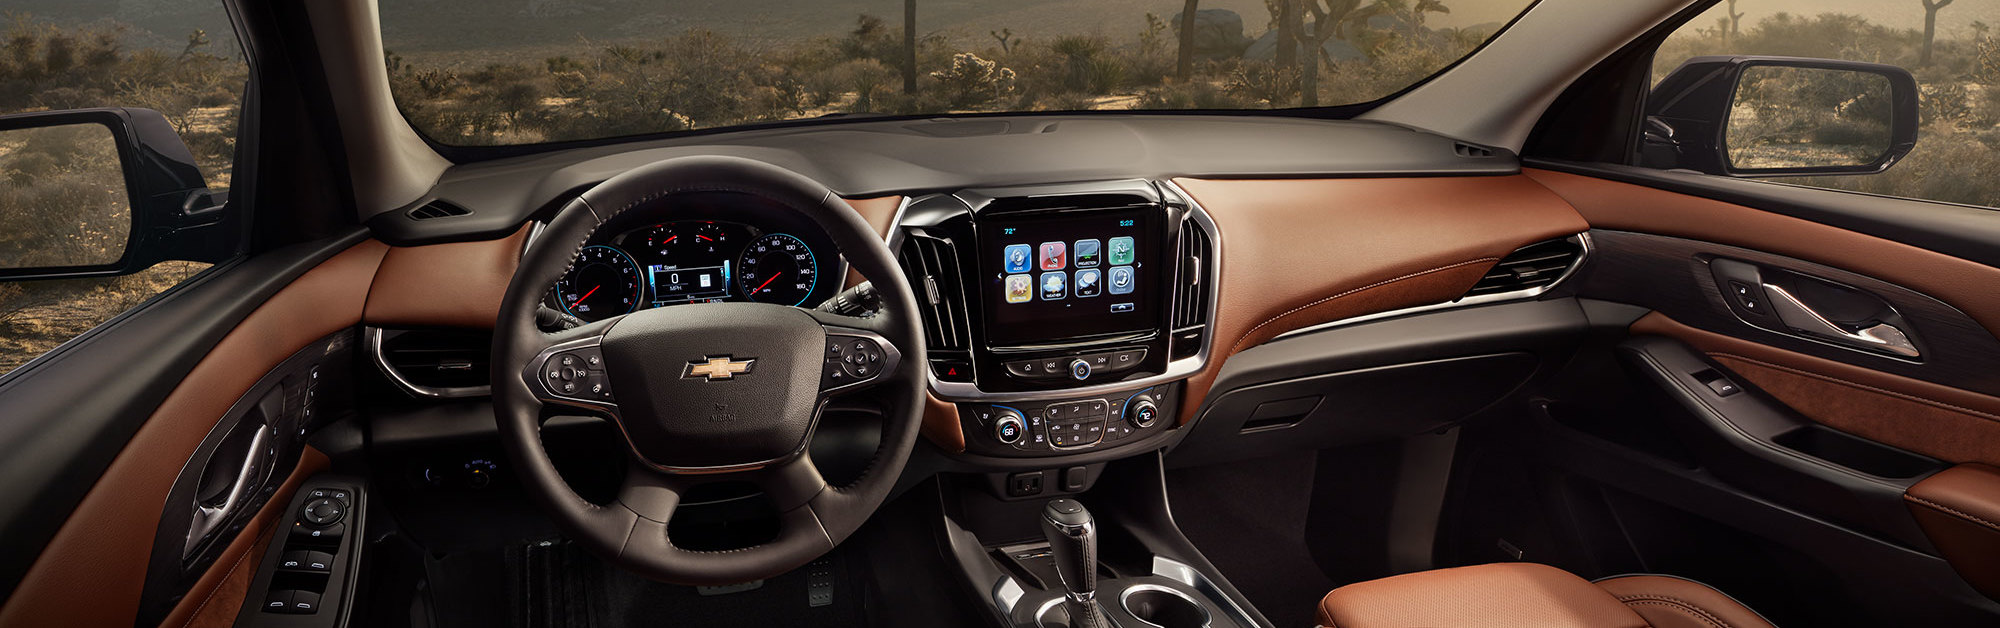 2020 Chevrolet Traverse Dashboard